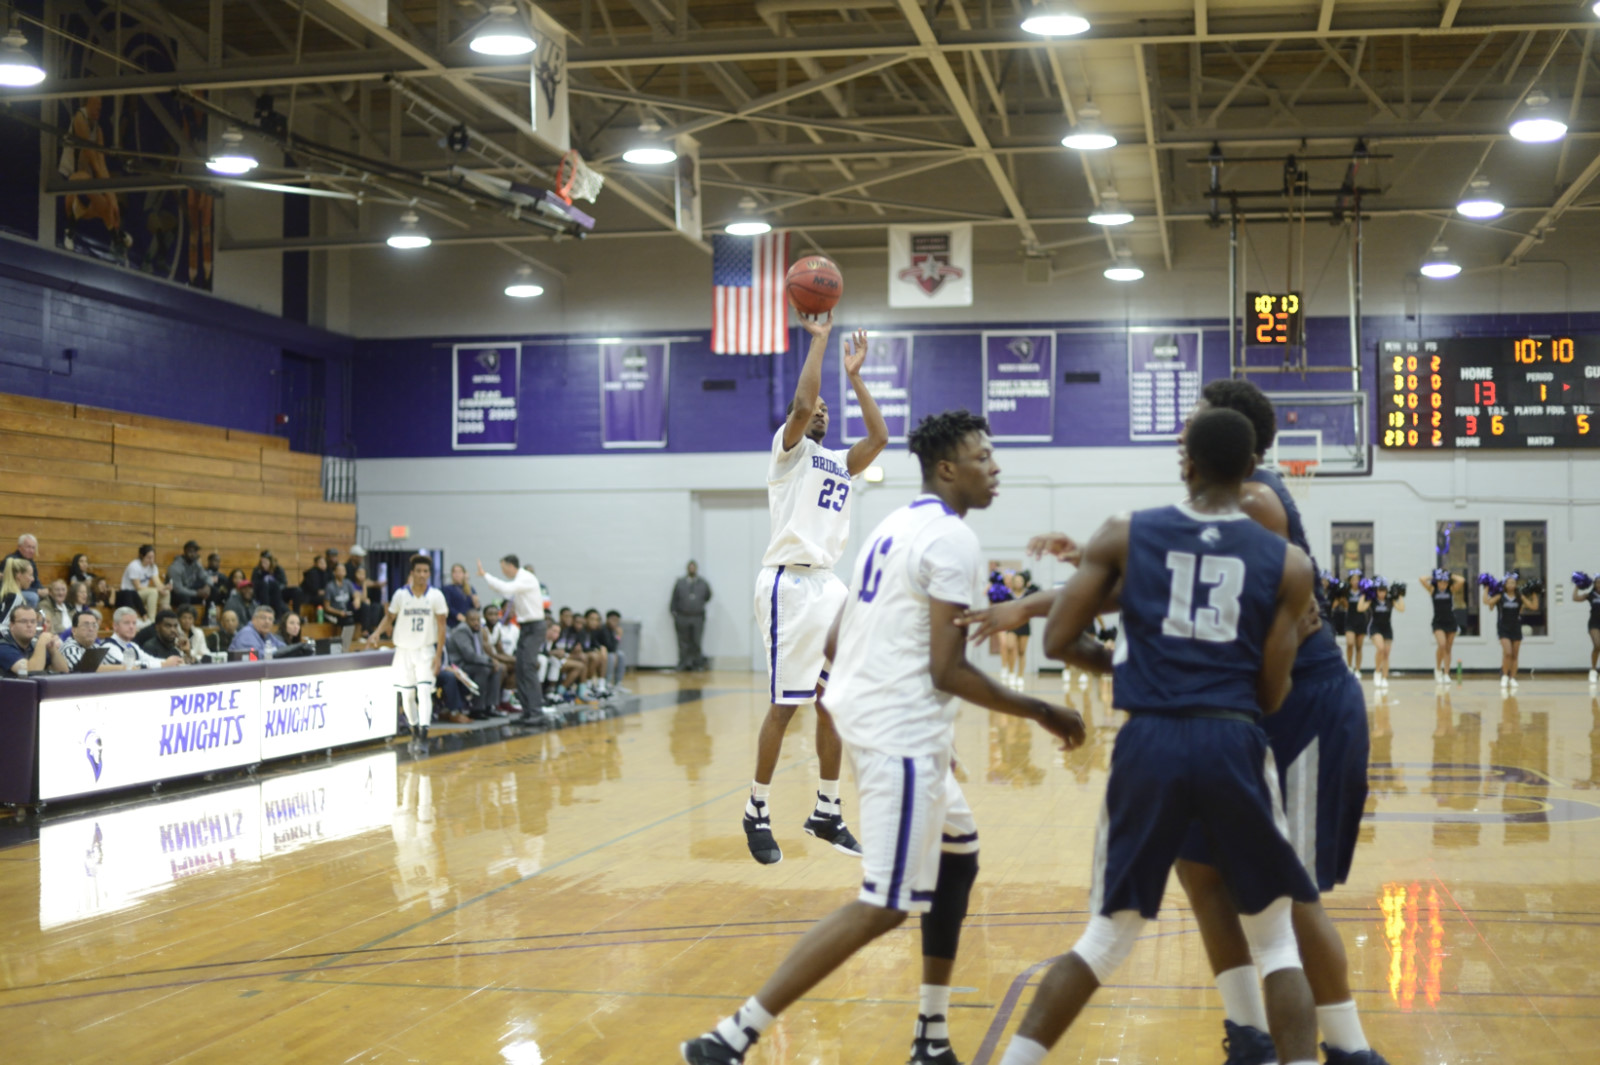 Men's Basketball Sees Five-Game Winning Streak Snapped At St. Thomas Aquinas In ECC Upper Echelon Battle